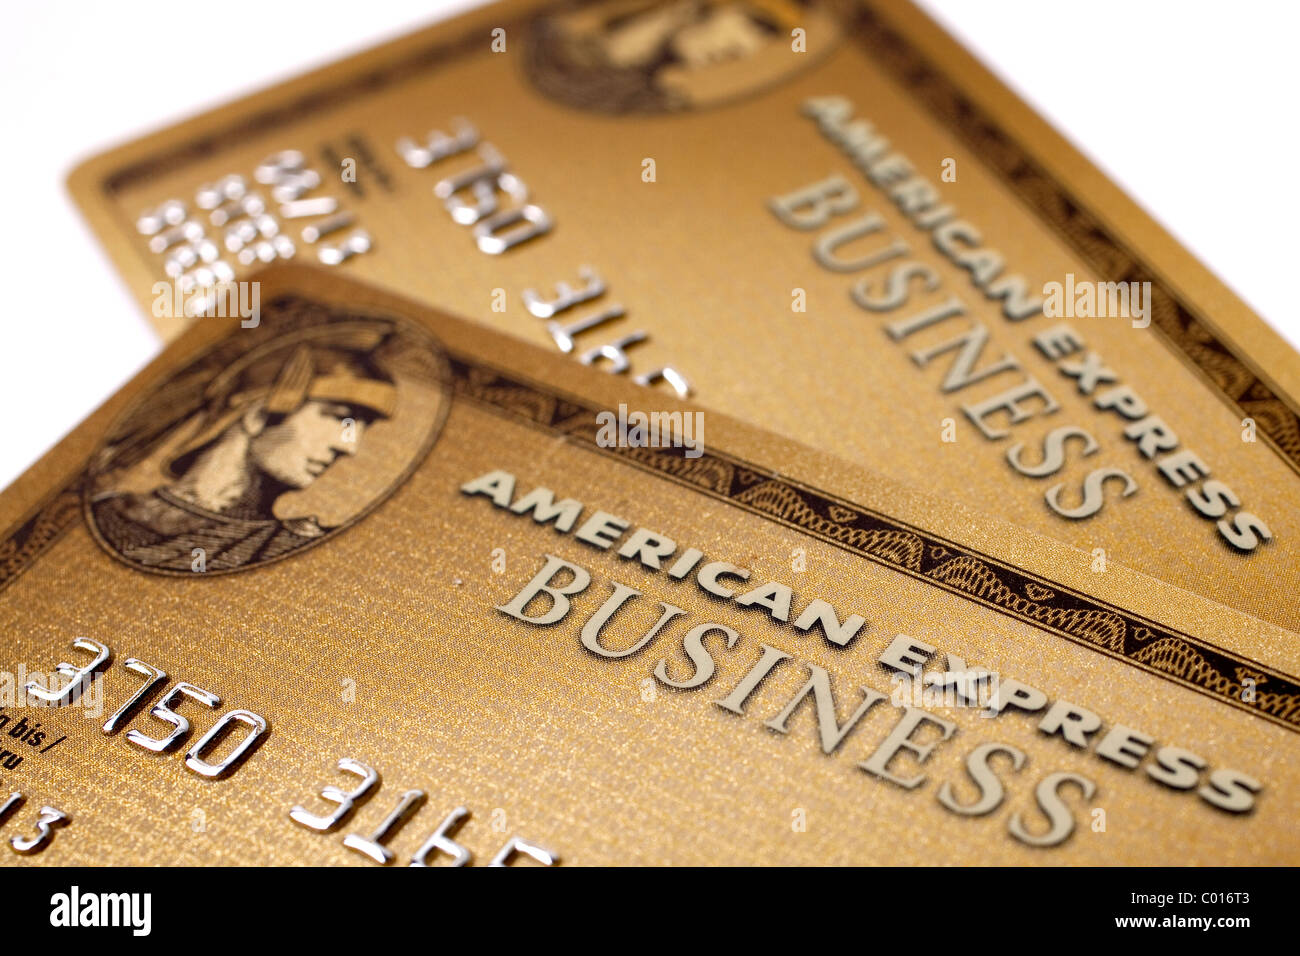 Credit cards american express amex gold business card stock photo credit cards american express amex gold business card reheart Gallery